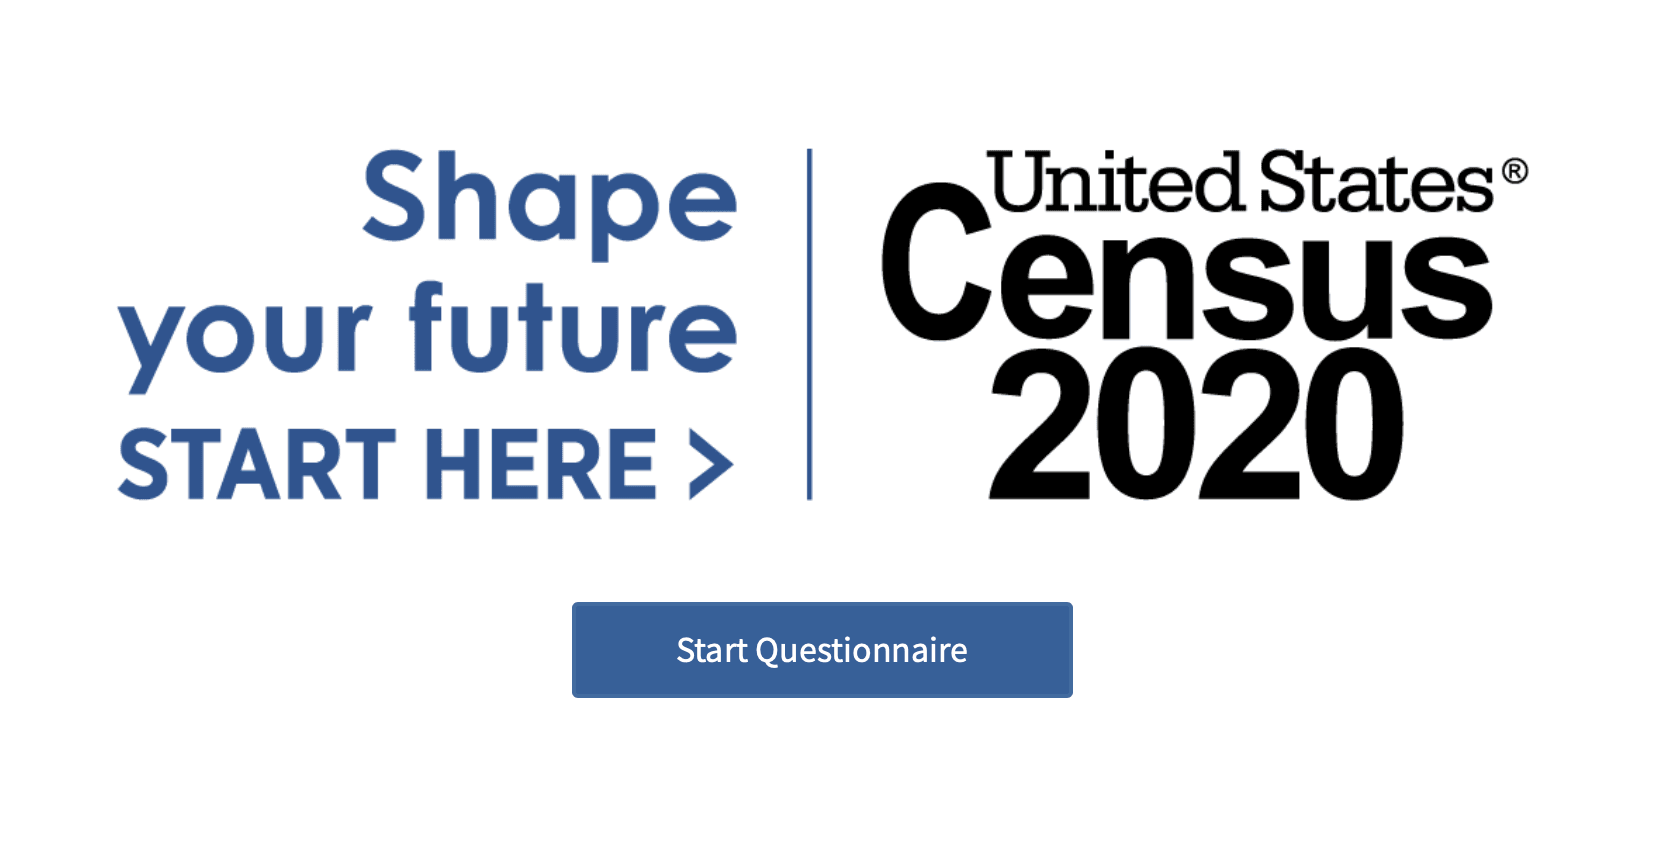 CENSUS 2020 SURVEY LINK